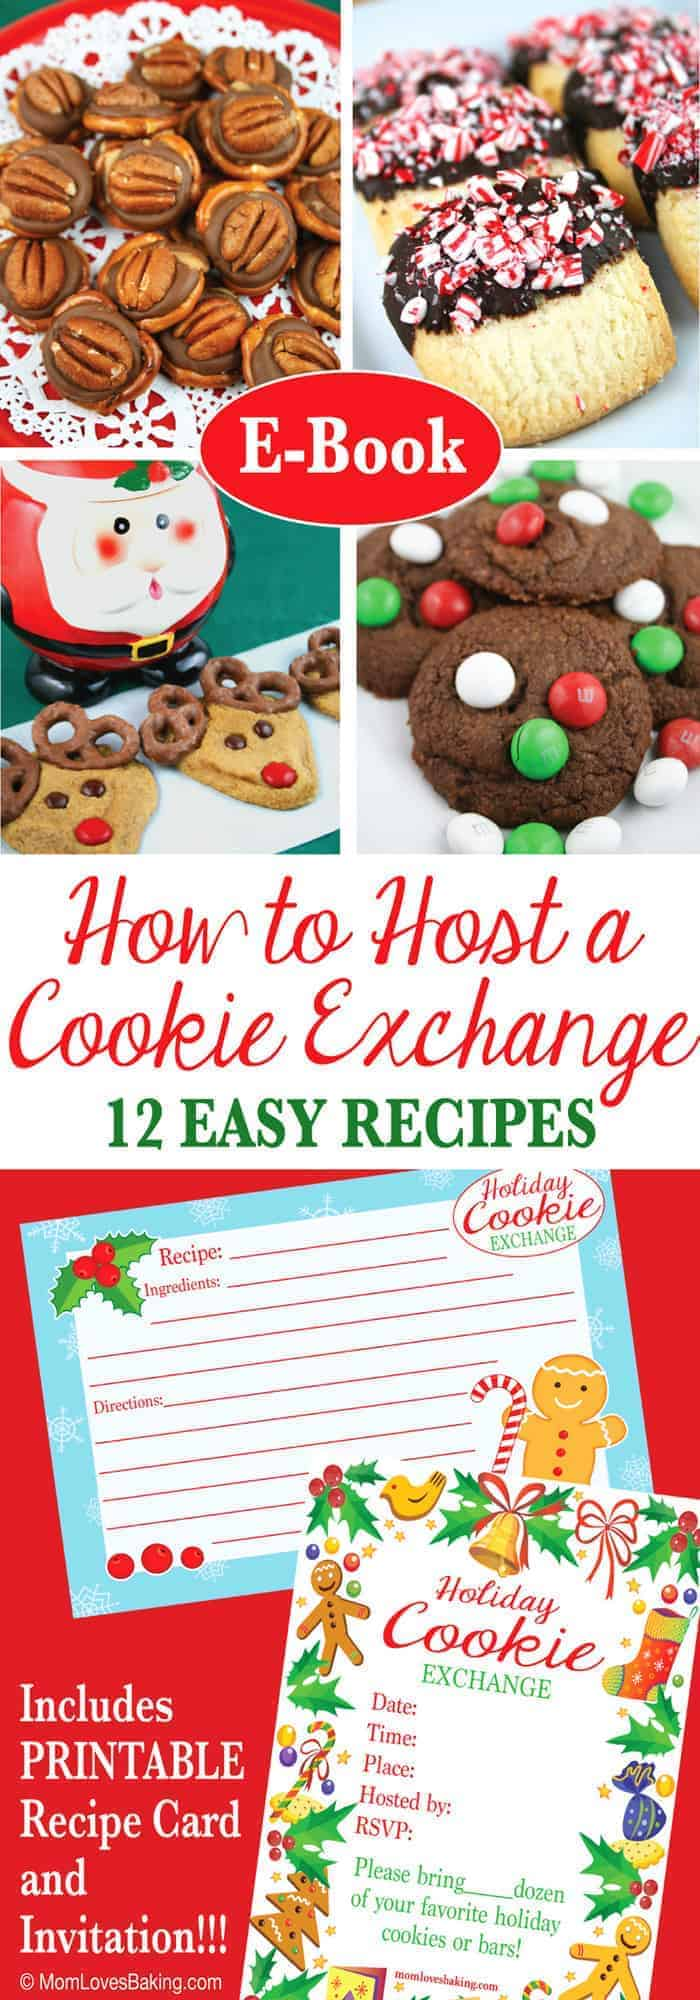 How To Host A Cookie Exchange 12 Easy Recipes